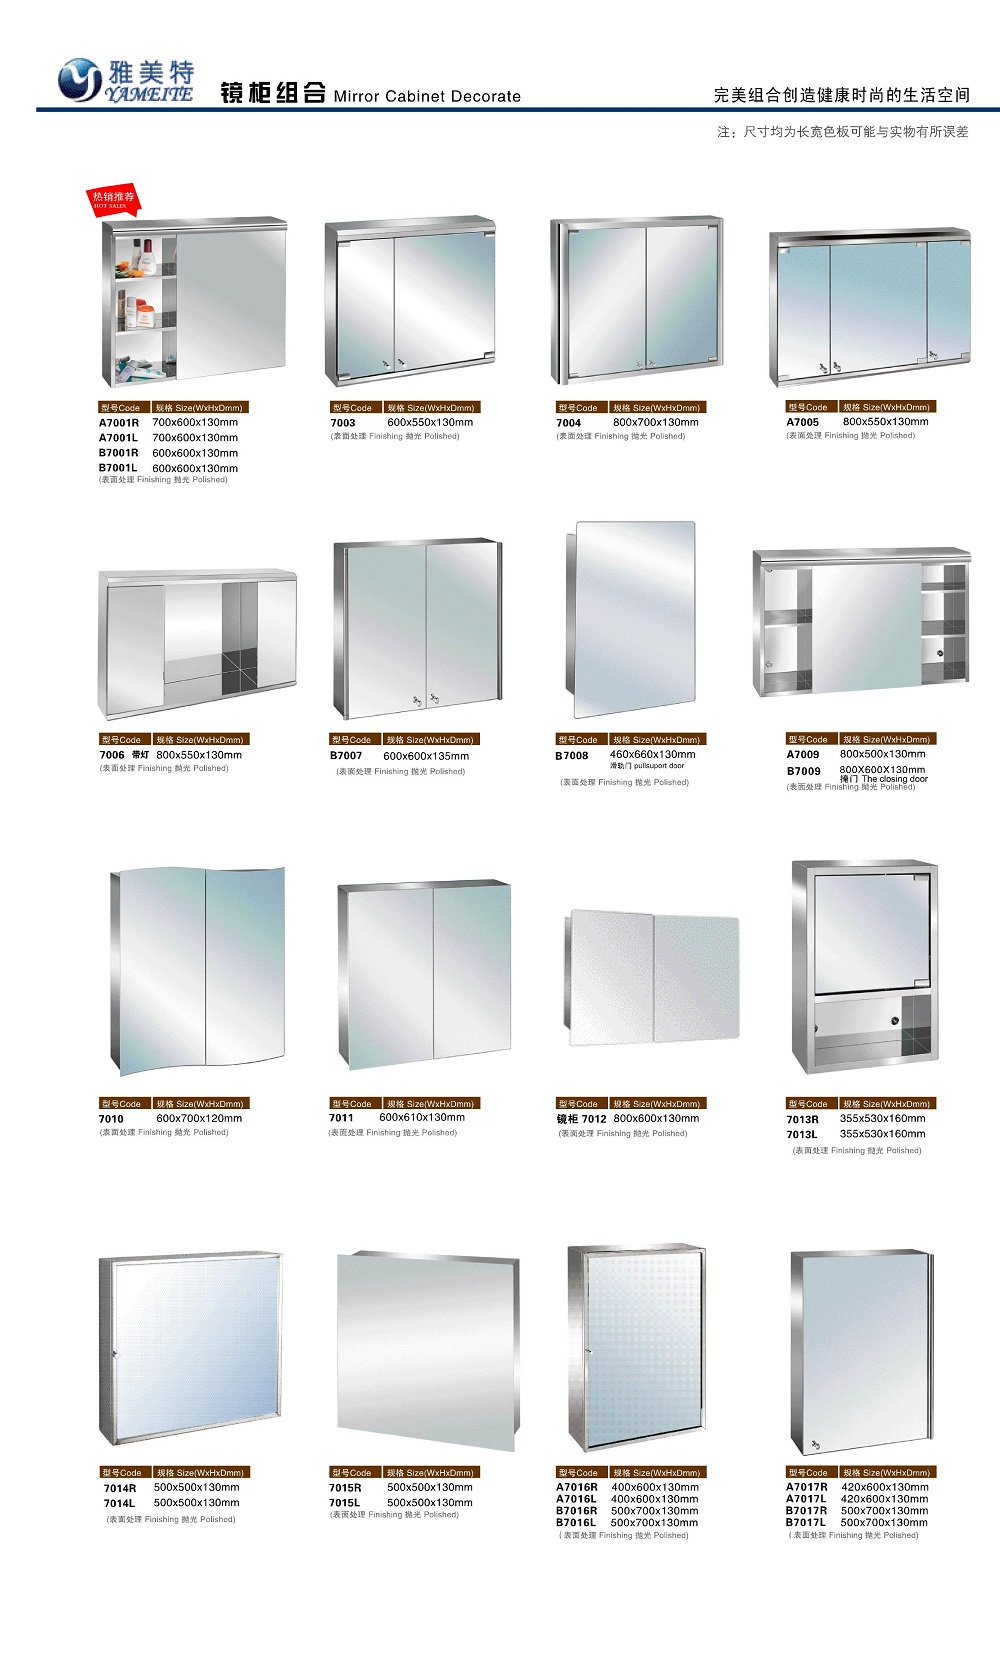 Mirror Cabinet Catalogue from OU HONG ZHI sanitary ware factory